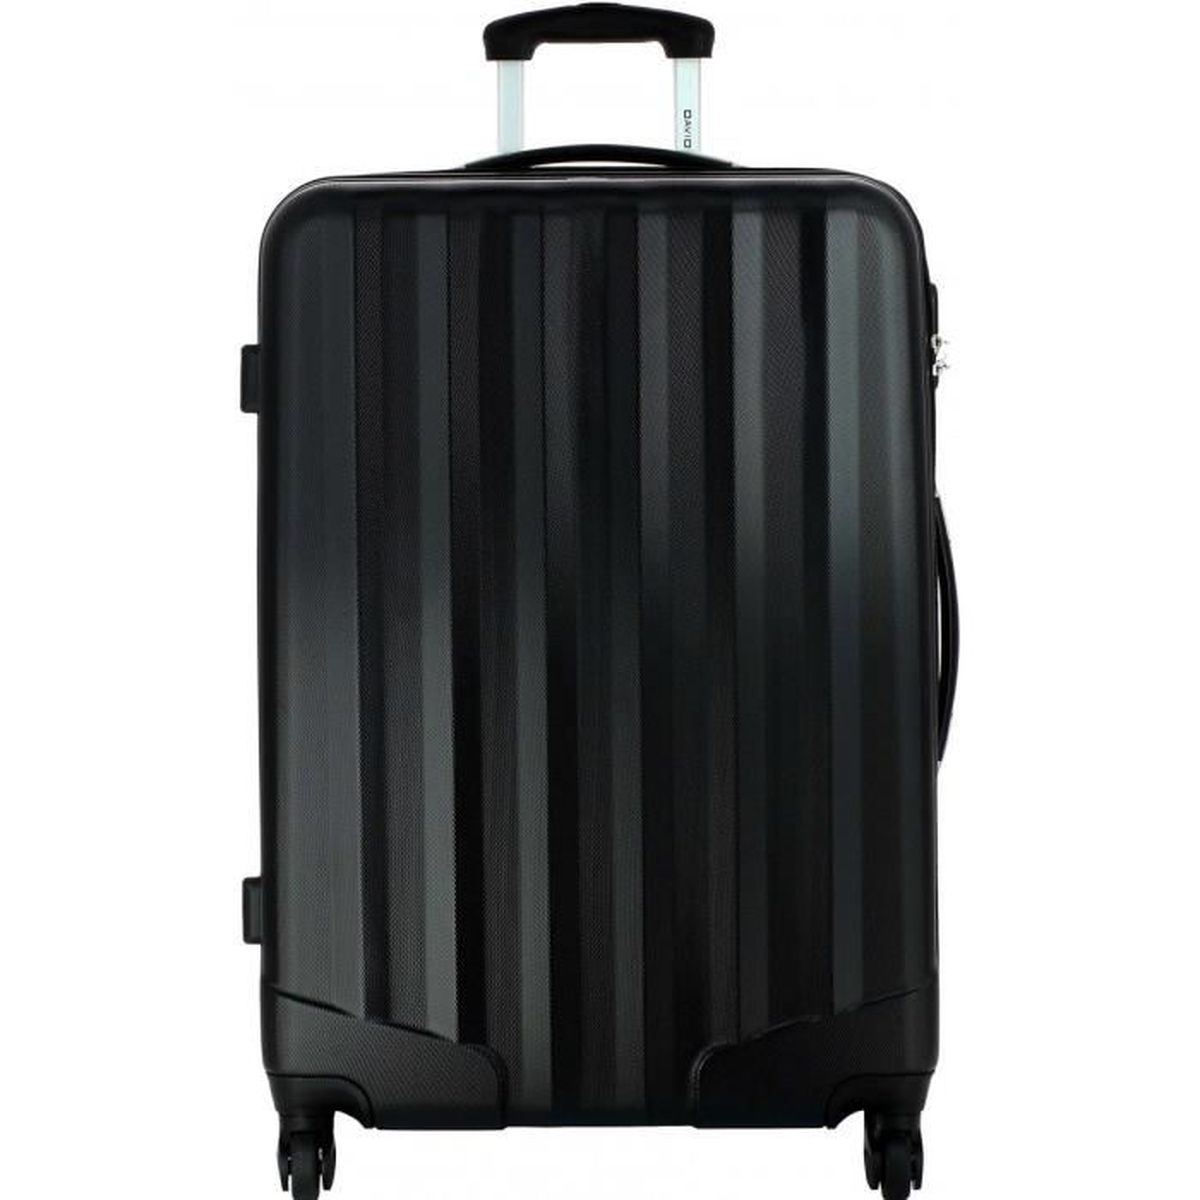 valise rigide david jones 66cm achat vente valise bagage 1112220082007 cdiscount. Black Bedroom Furniture Sets. Home Design Ideas